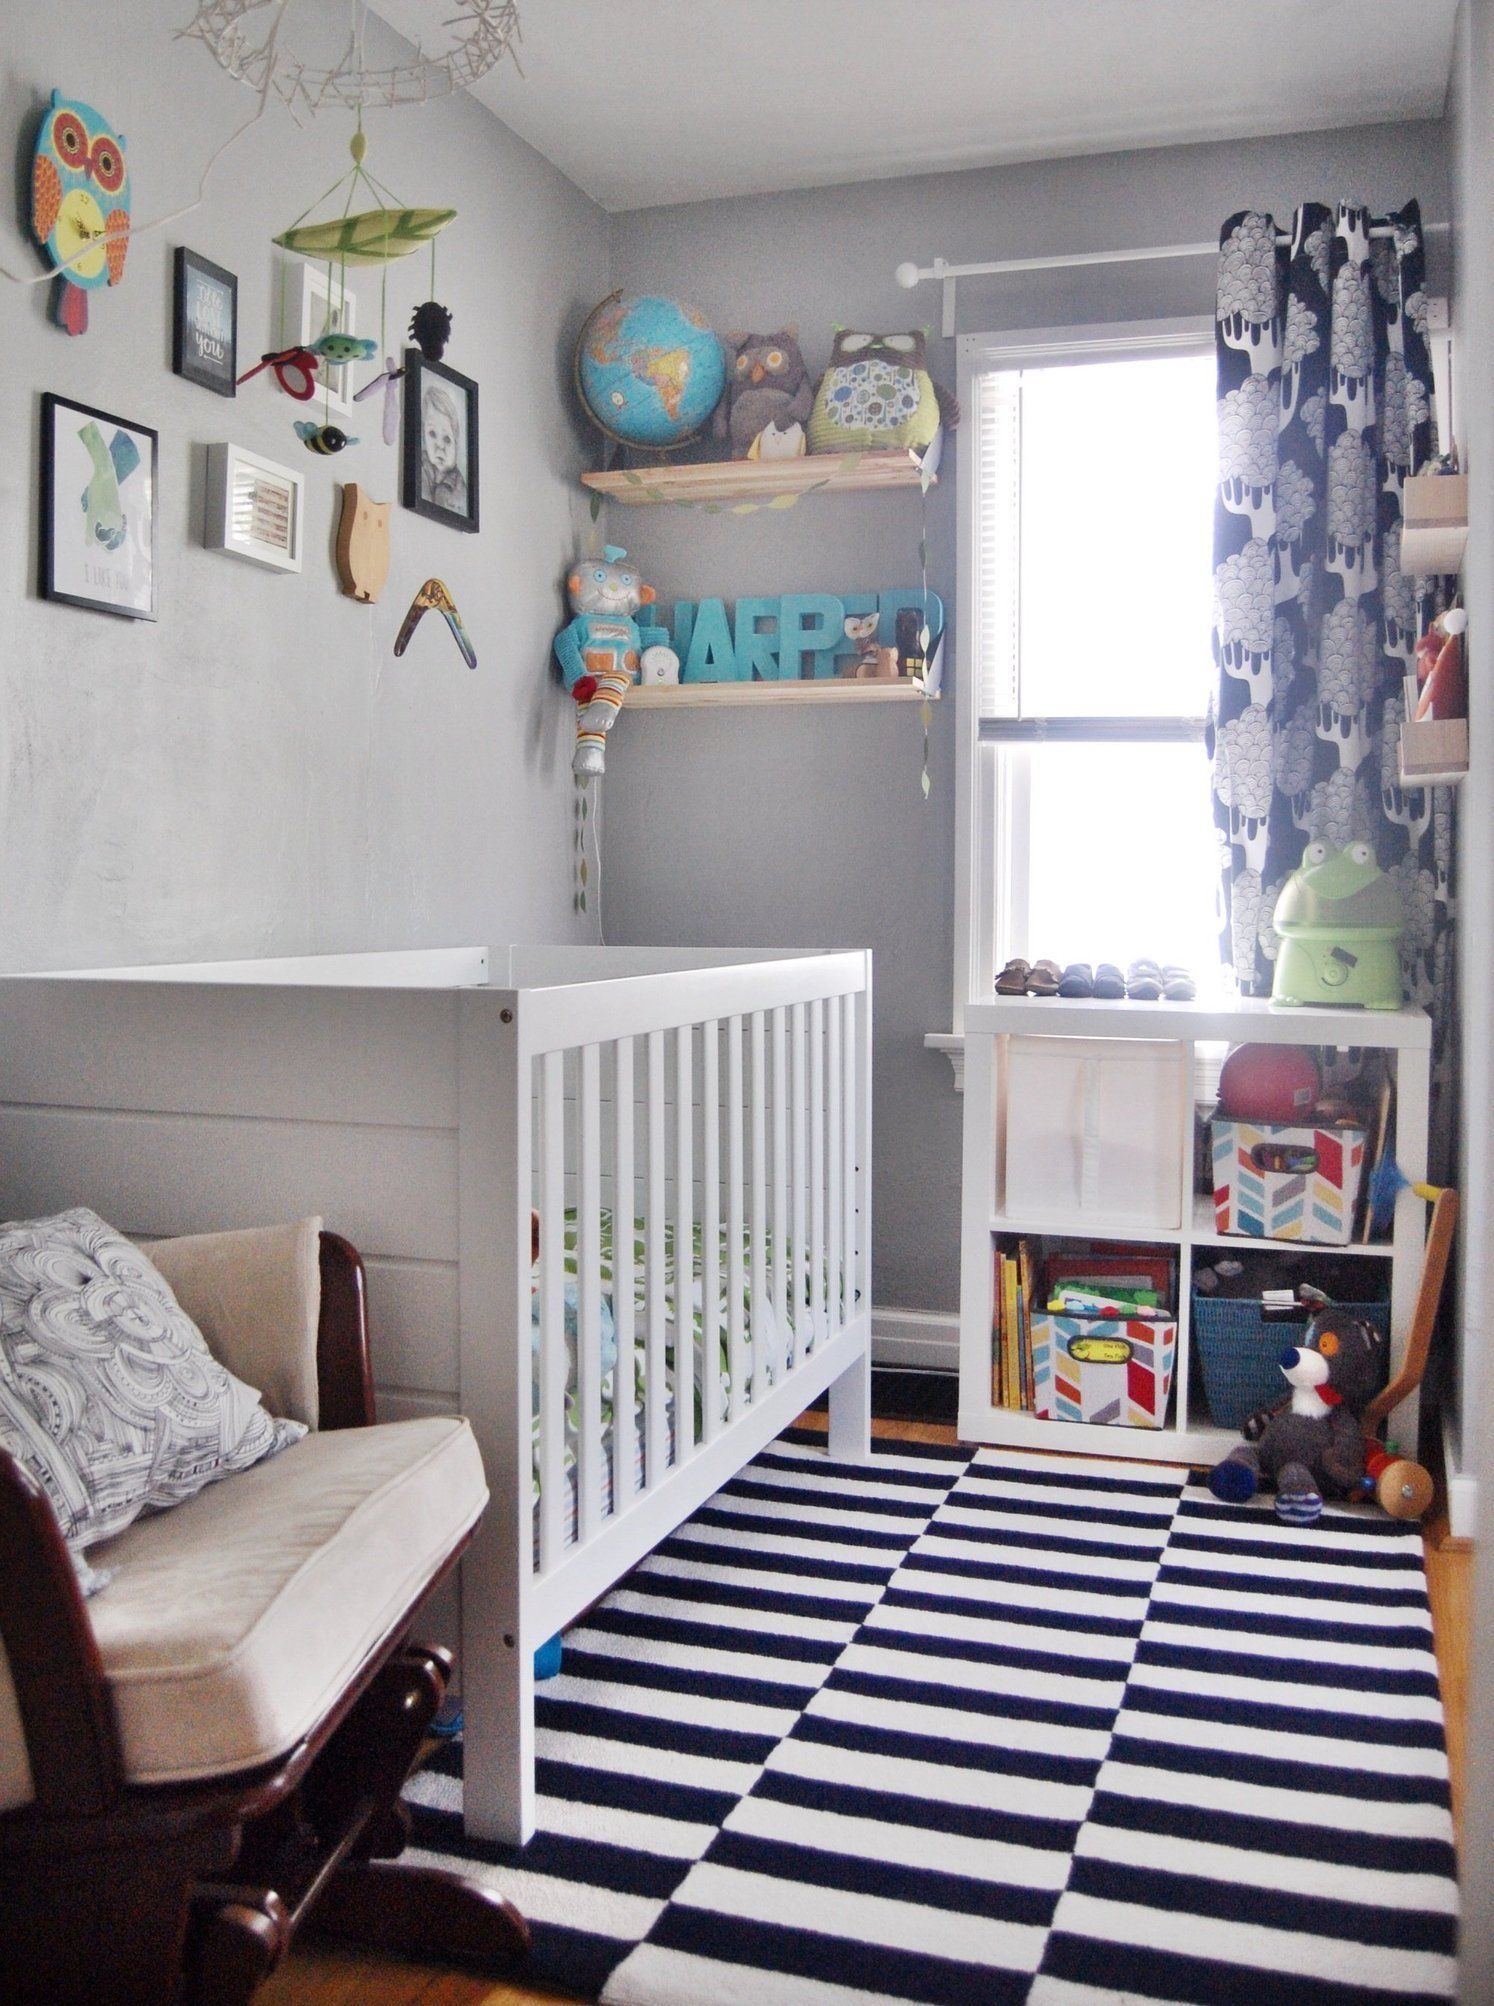 Baby Bedroom In A Box Special: Small Cool…With Kids? Yes, You Can. Kids Spaces From The